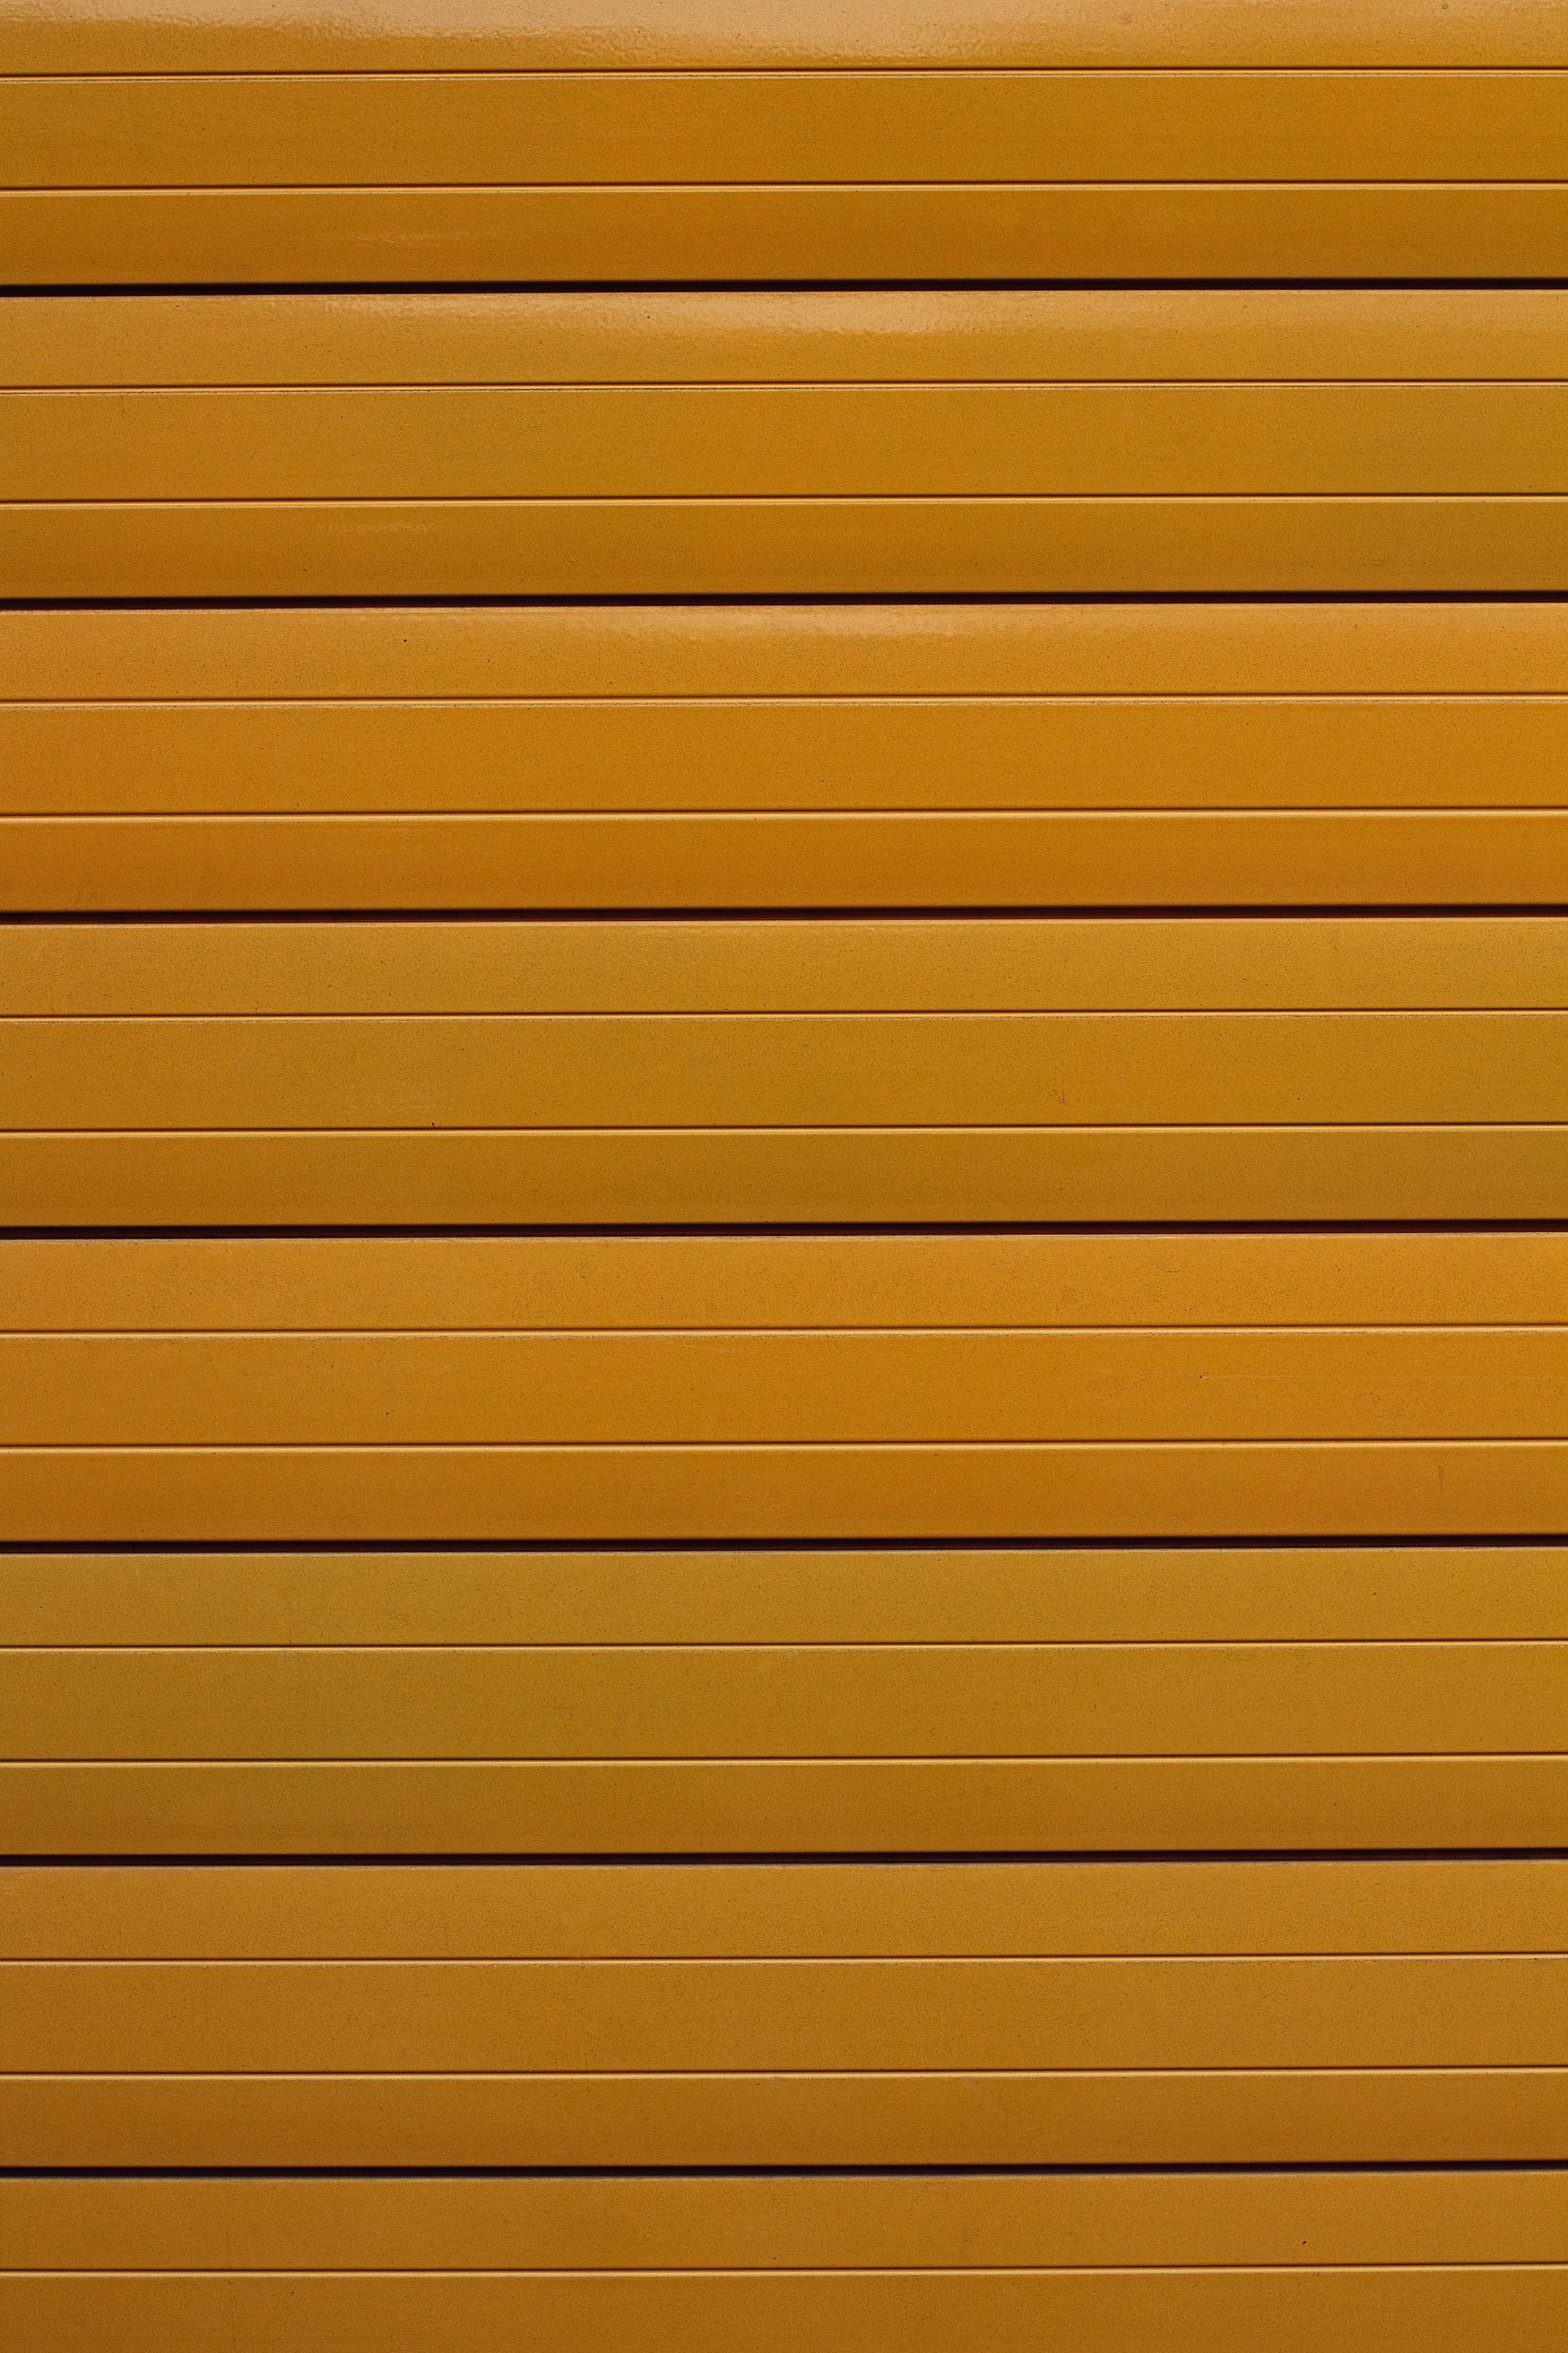 152912 download wallpaper Textures, Wood, Tree, Texture, Lines, Brown screensavers and pictures for free